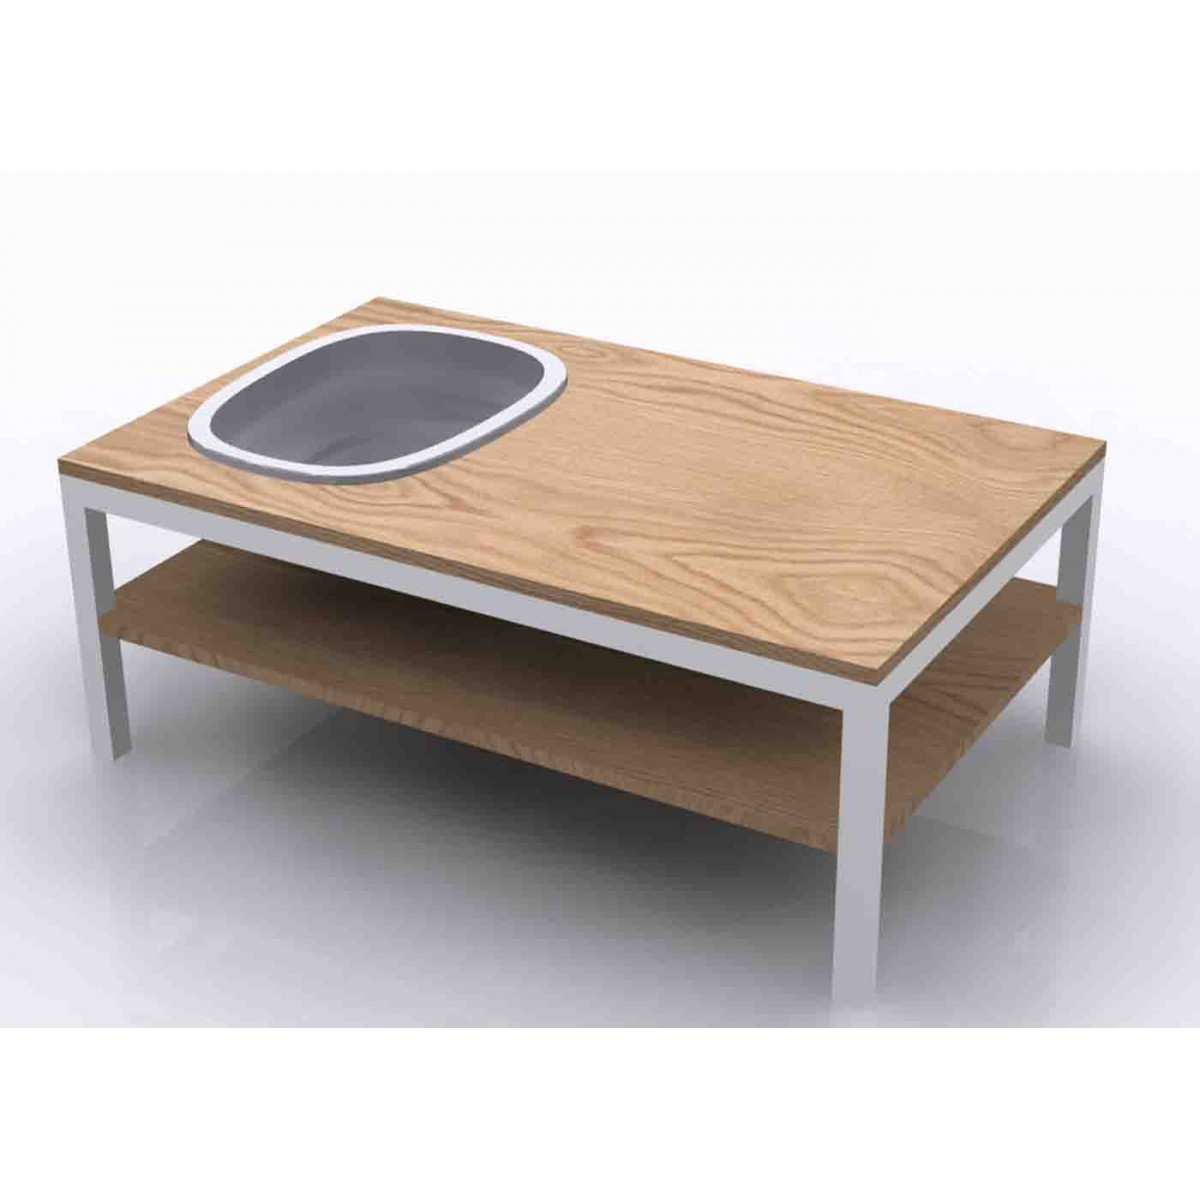 Table Basse Bois Originale - Table basse originale en ch u00eane et gr u00e8s Lagune Bois par Bellila